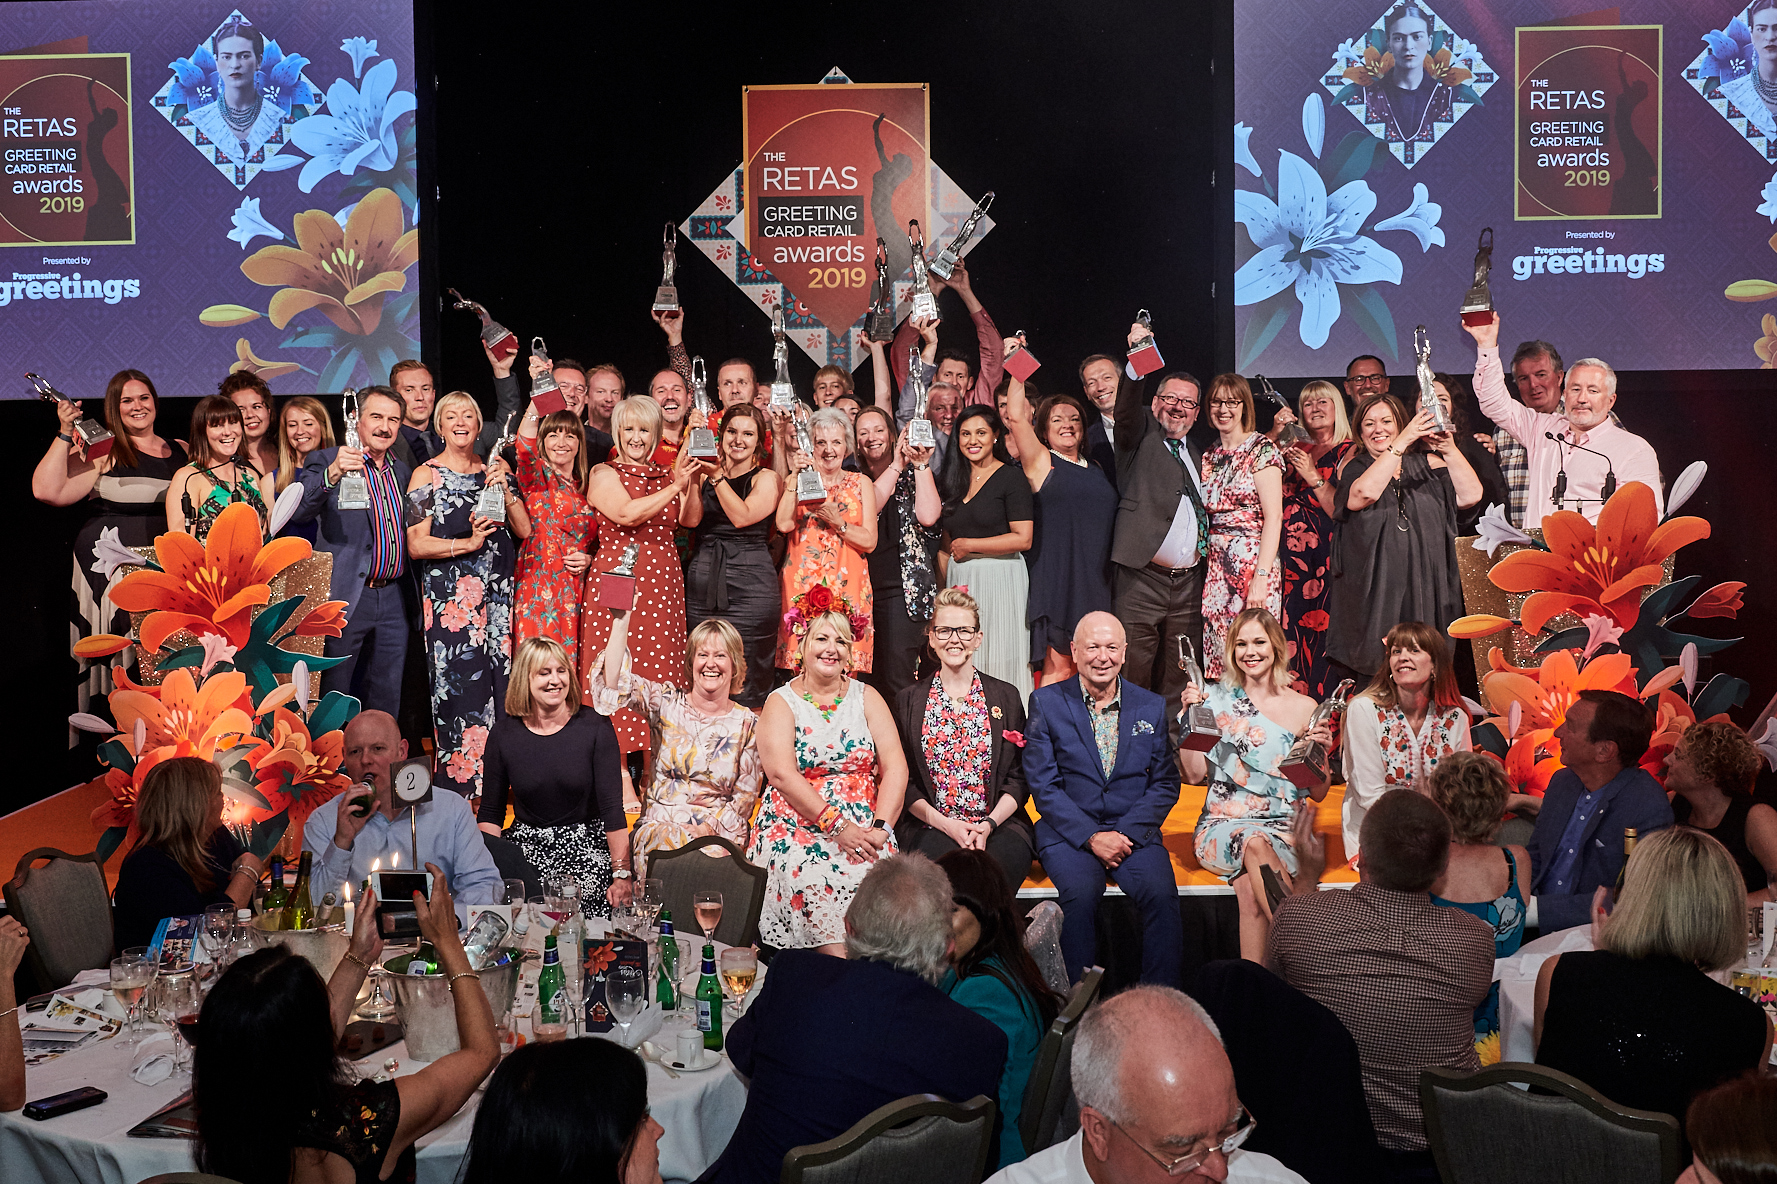 Above: The 2019 winners and organisers on stage at last year's Frida Kahlo-themed Retas.